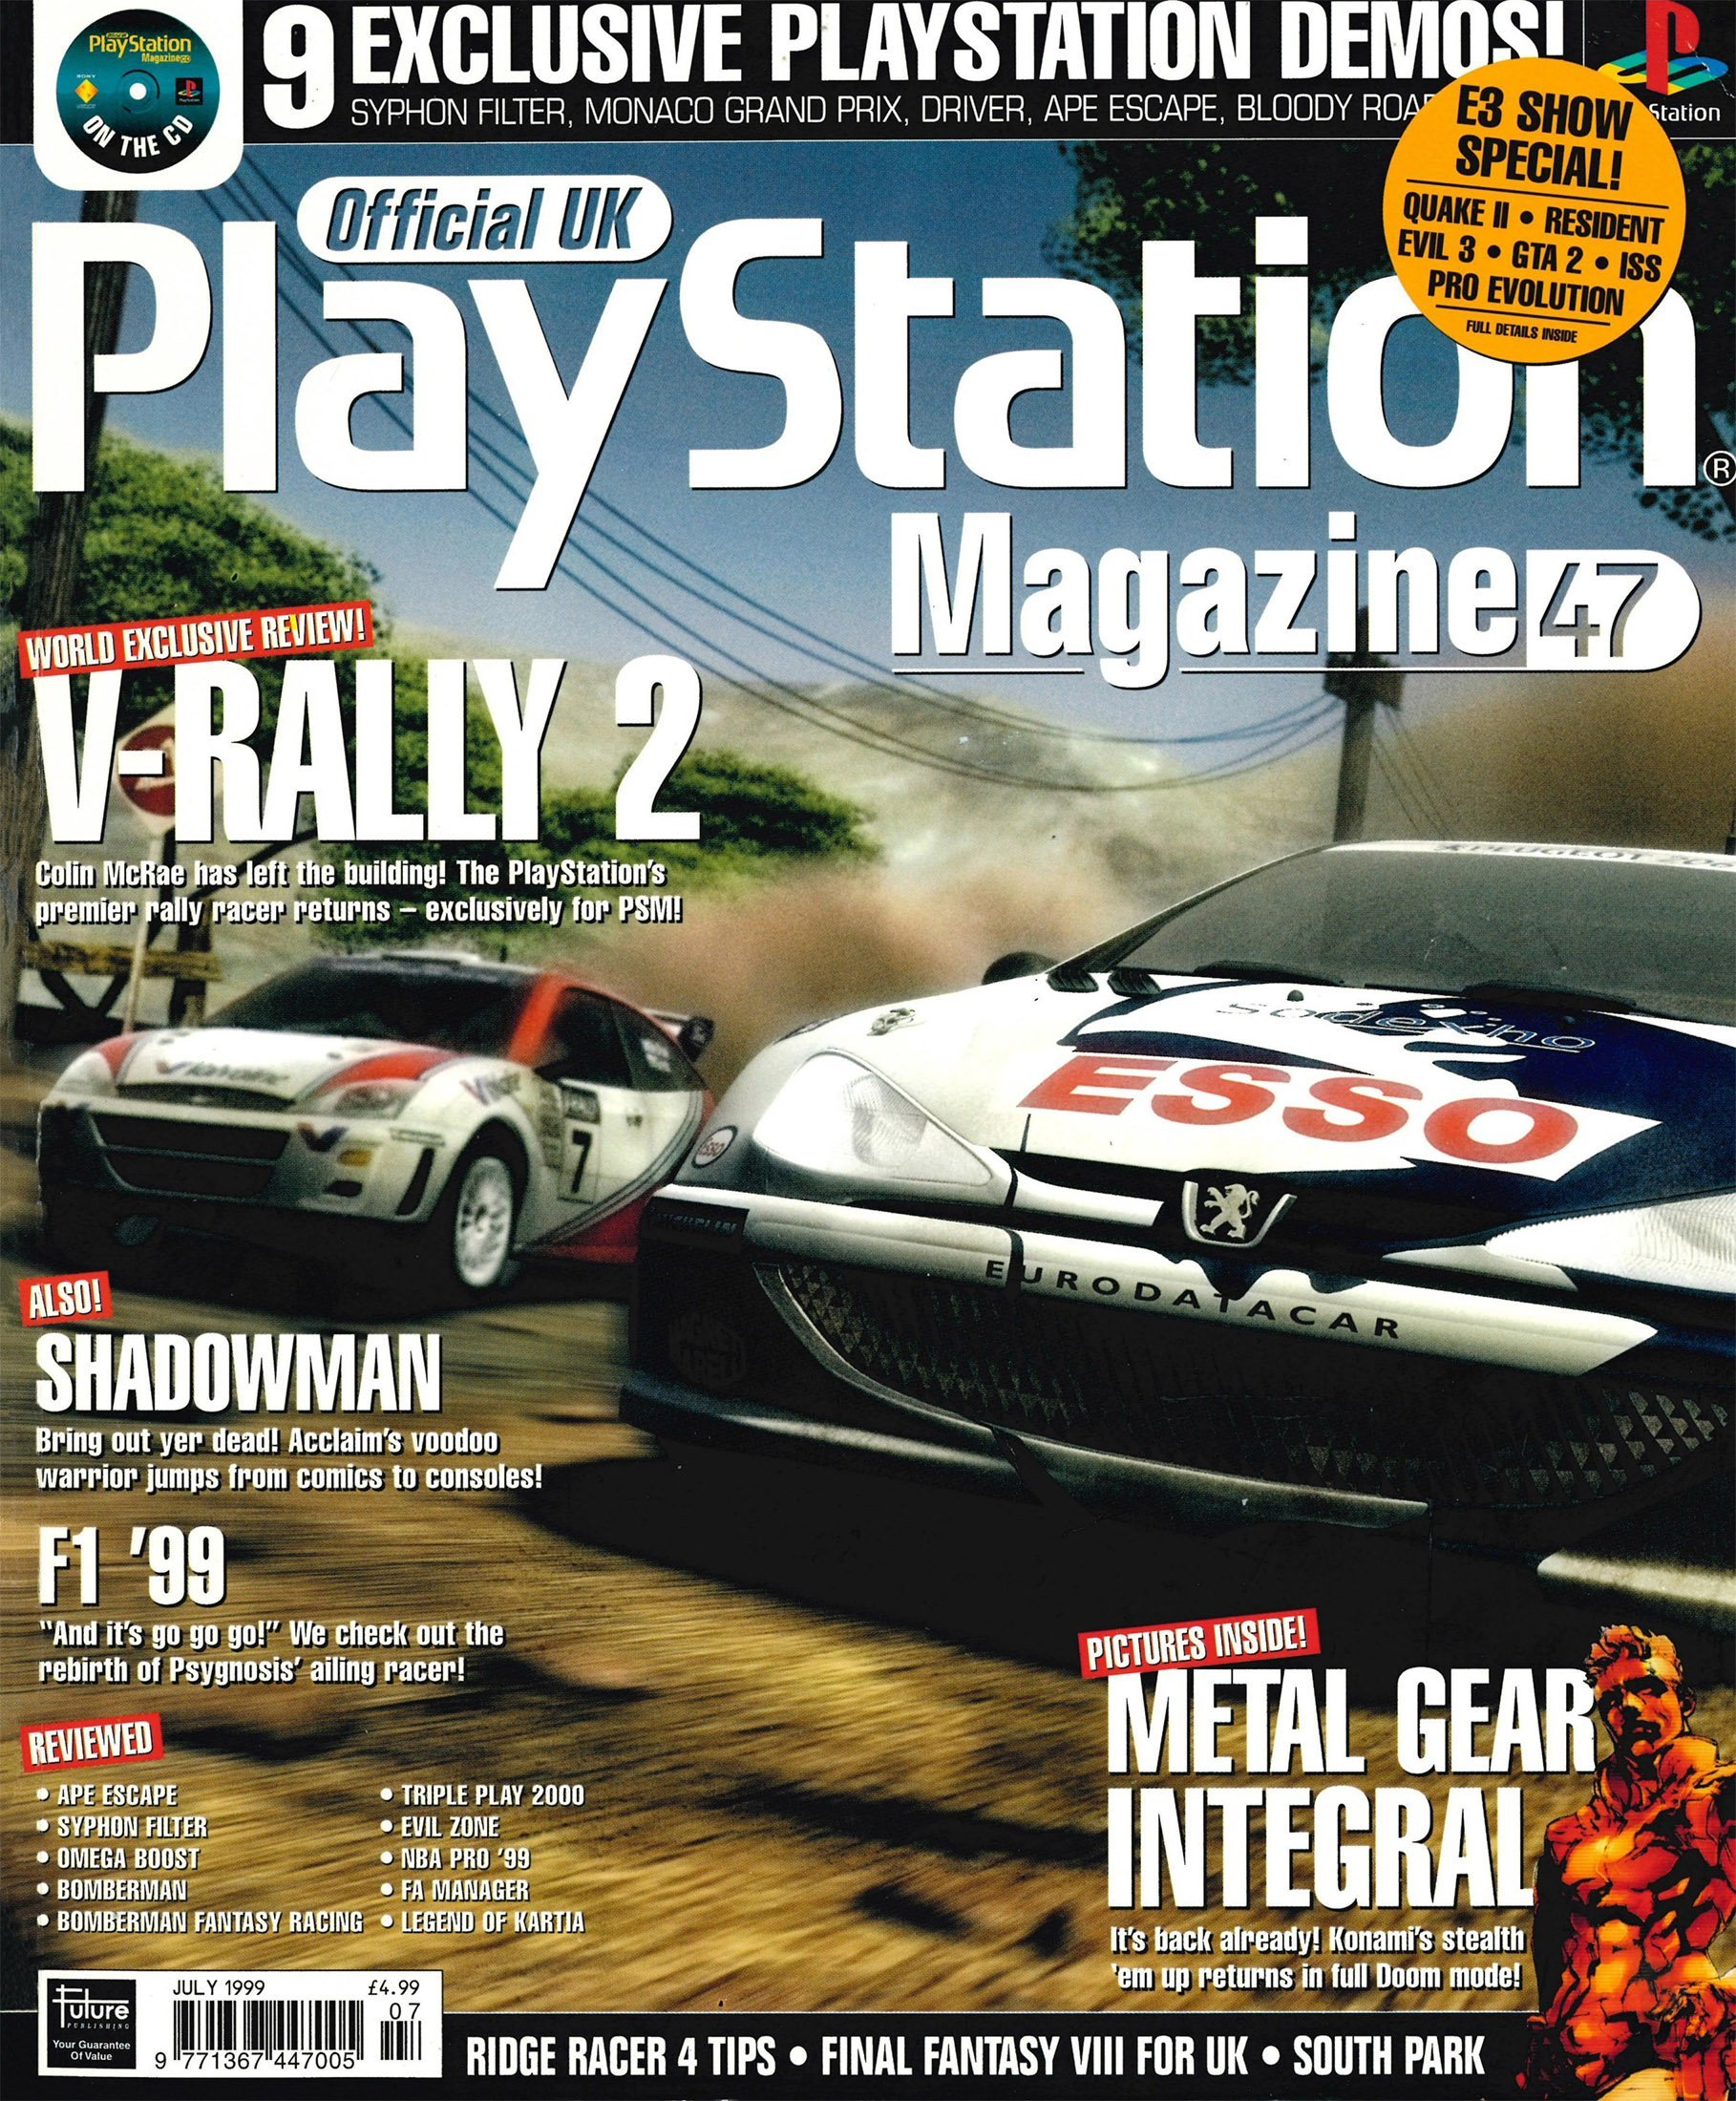 Official UK PlayStation Magazine Issue 047 (July 1999)